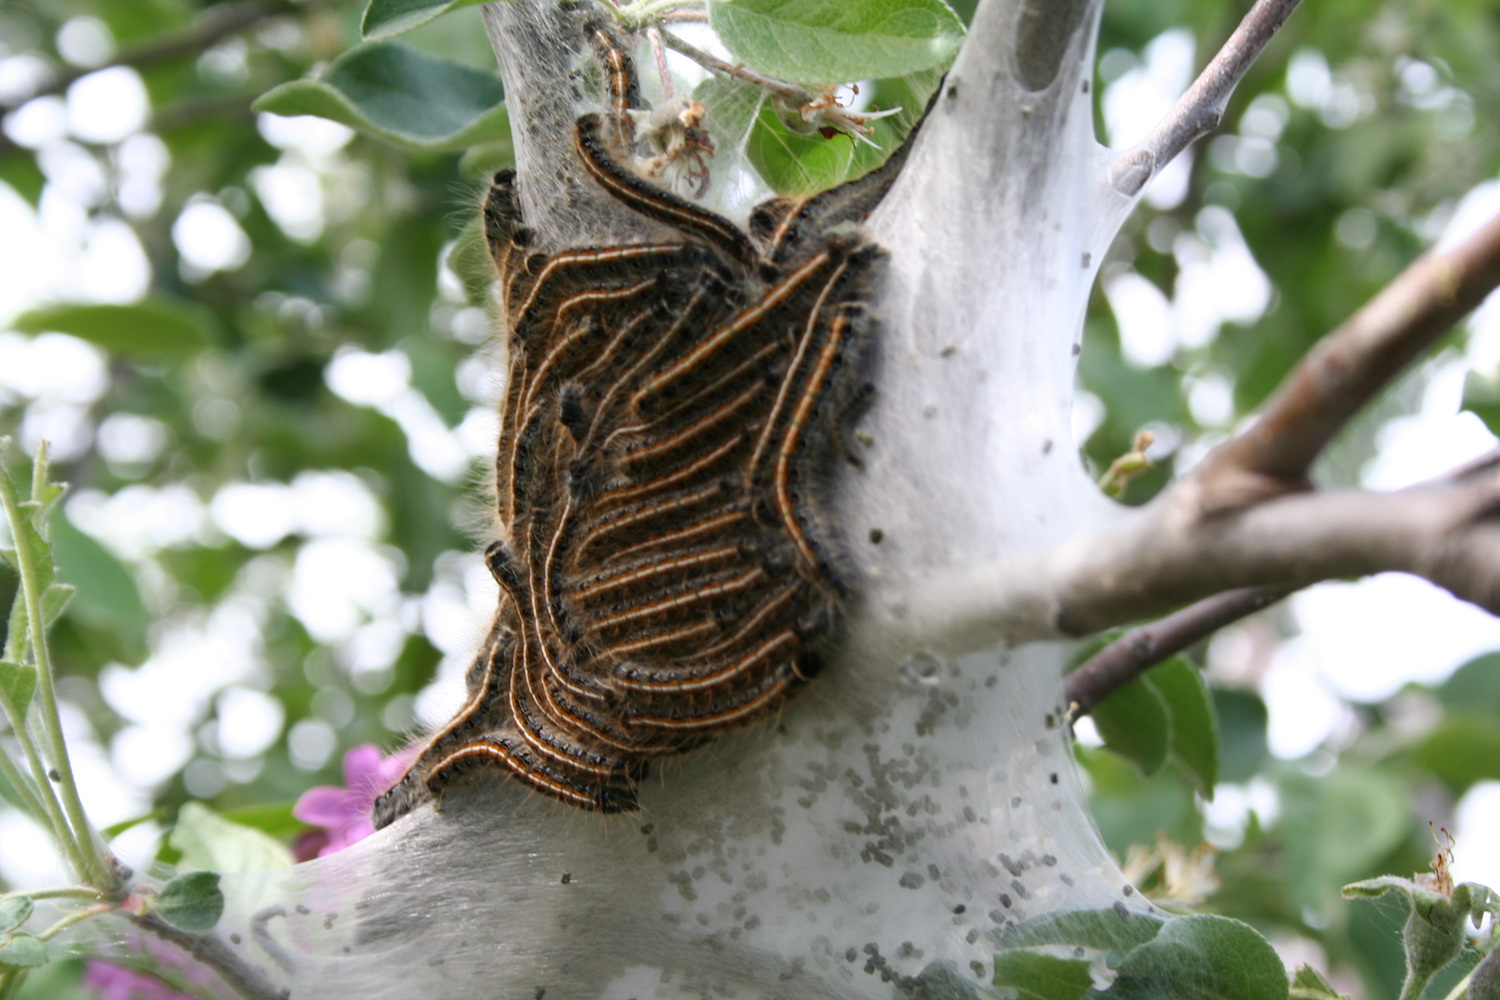 caterpillars near next in apple tree